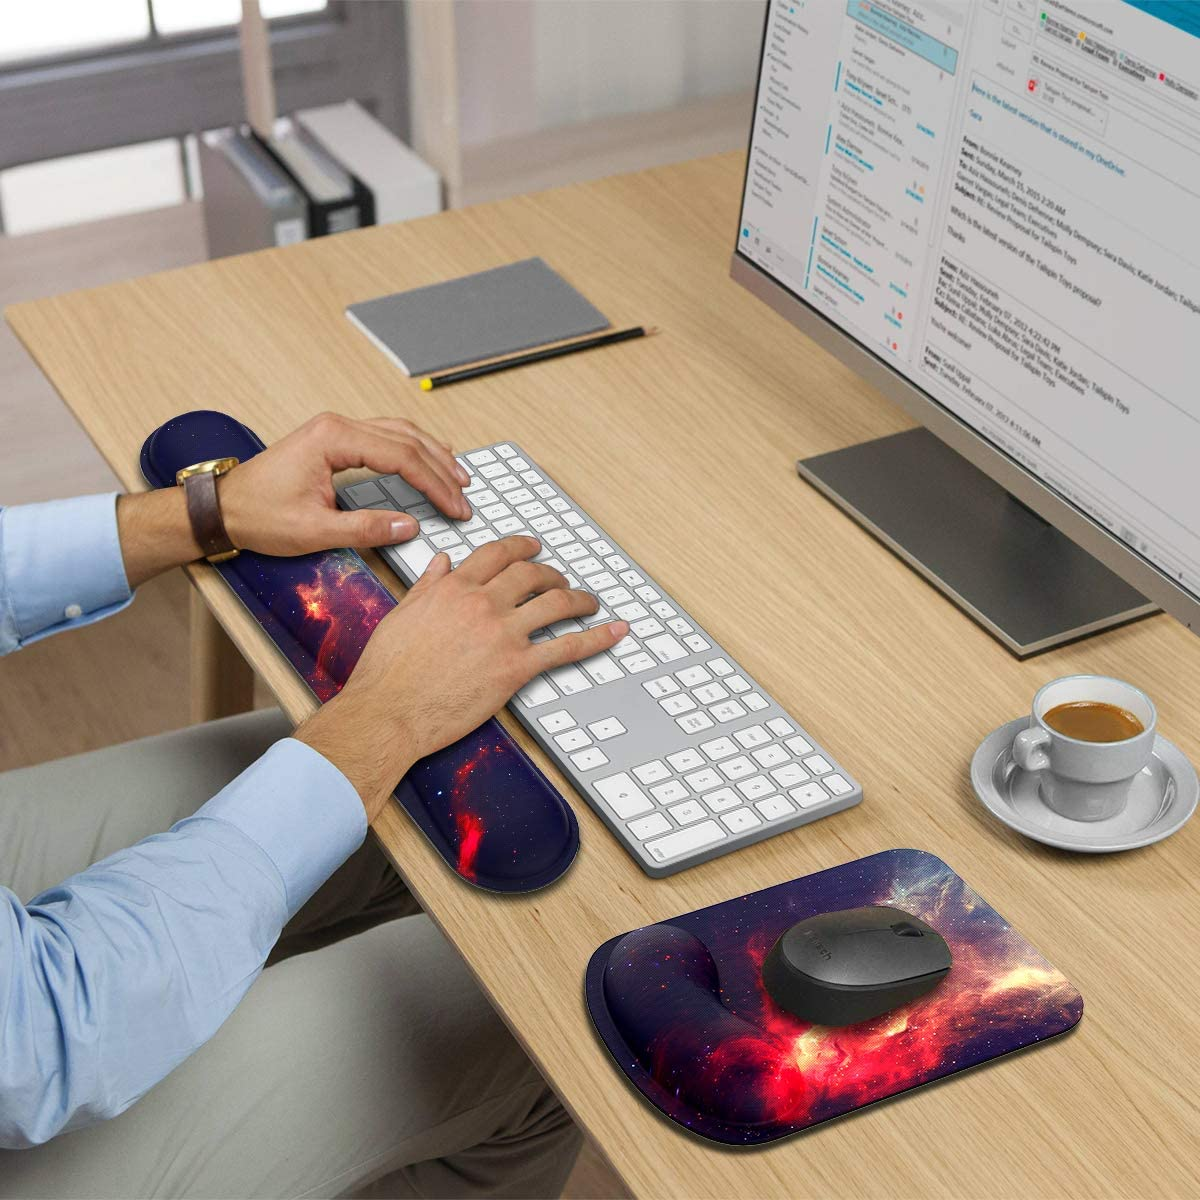 Green, Wrist Rest Supggear Keyboard Wrist Rest Pad and Mouse Wrist Rest Support Gaming Ergonomic Keyboard Wrist Cushion Support Set with Memory Foam Anti-Skid for for Office Laptop Computer